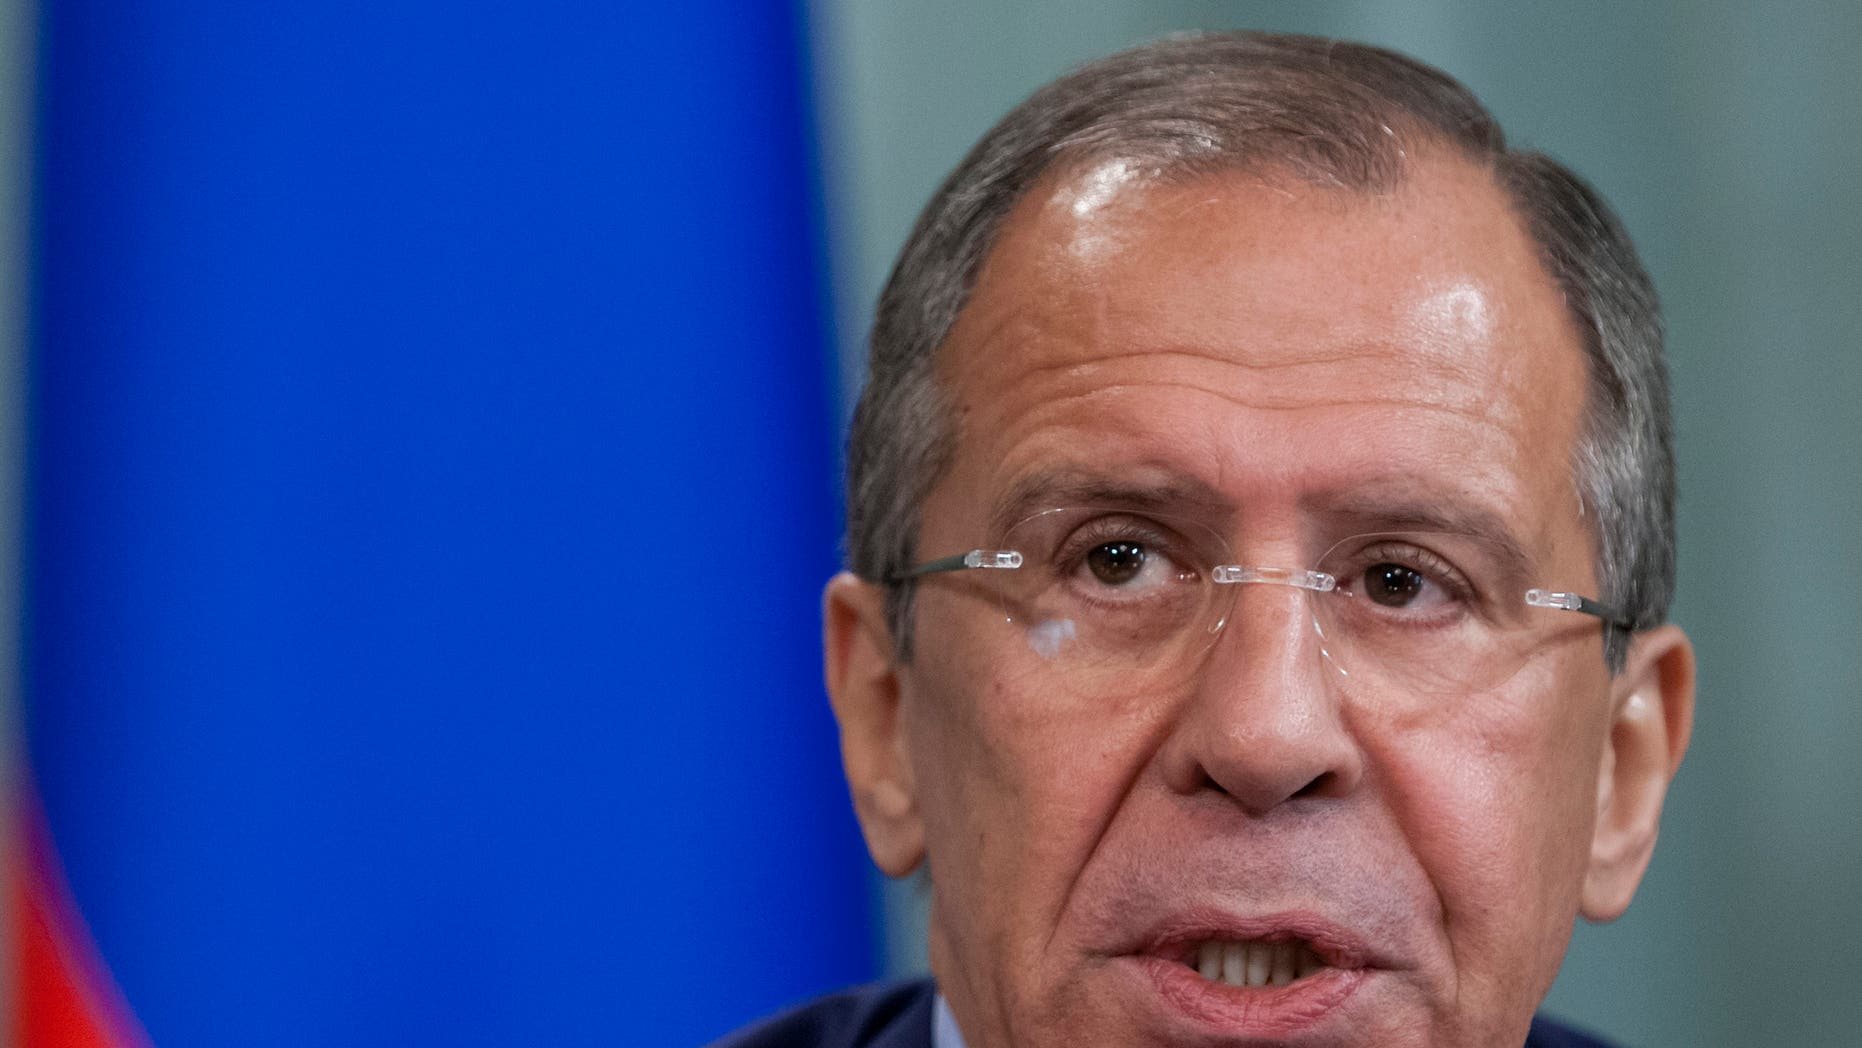 June 15, 2012: Russian Foreign Minister Sergey Lavrov speaks at a news conference  in Moscow,  Russia.